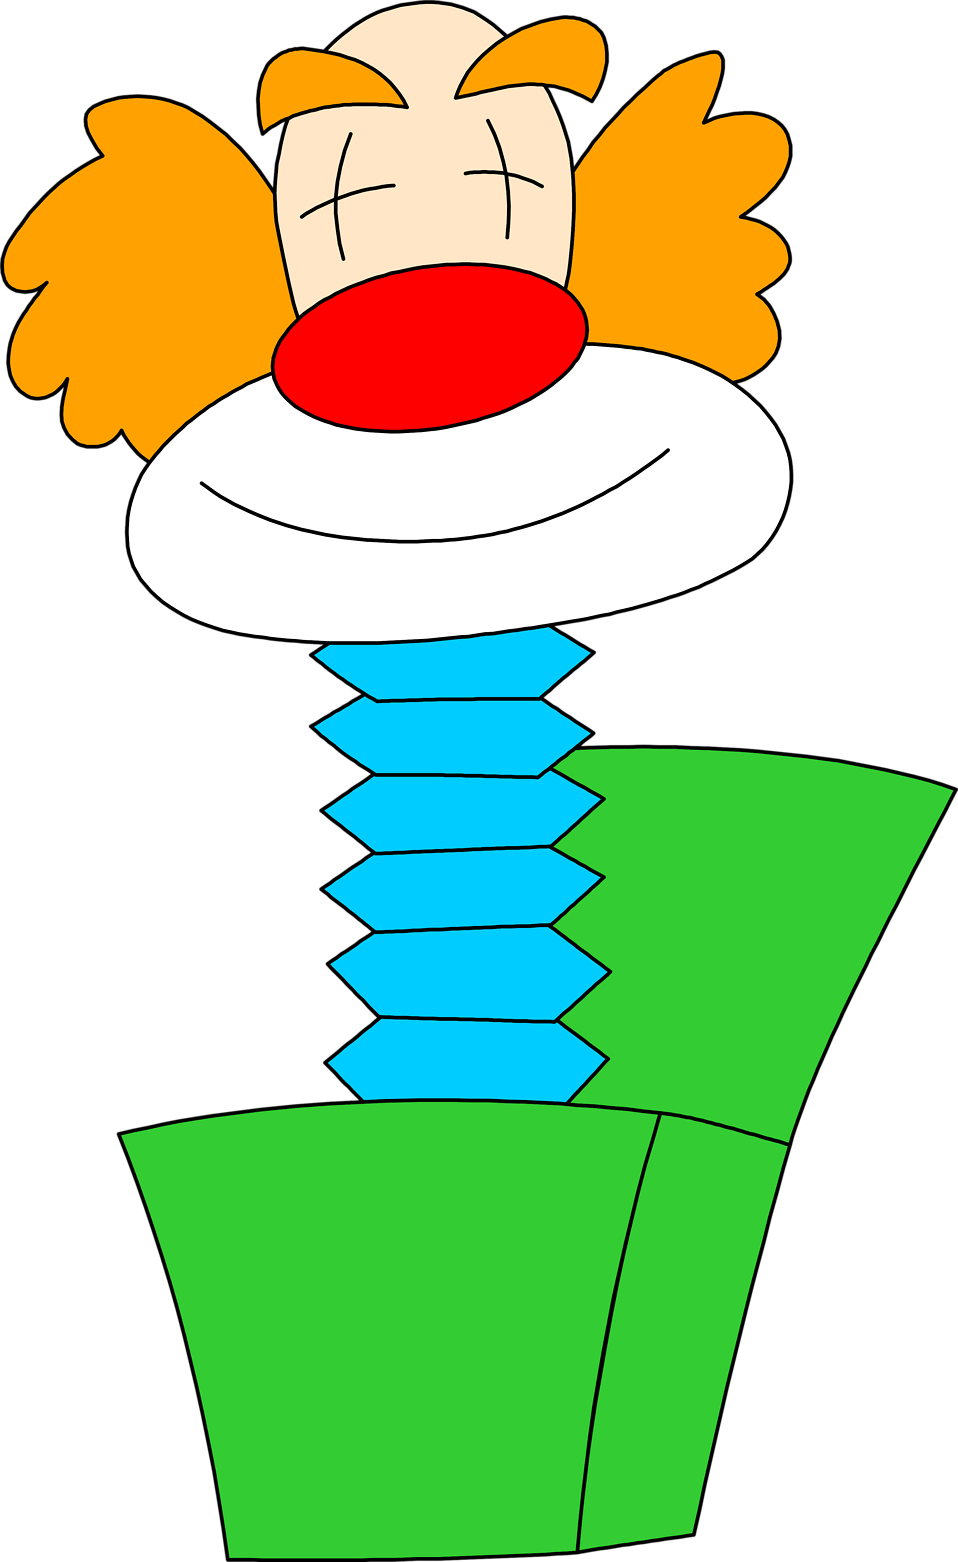 Clown clipart green. Jack in the box